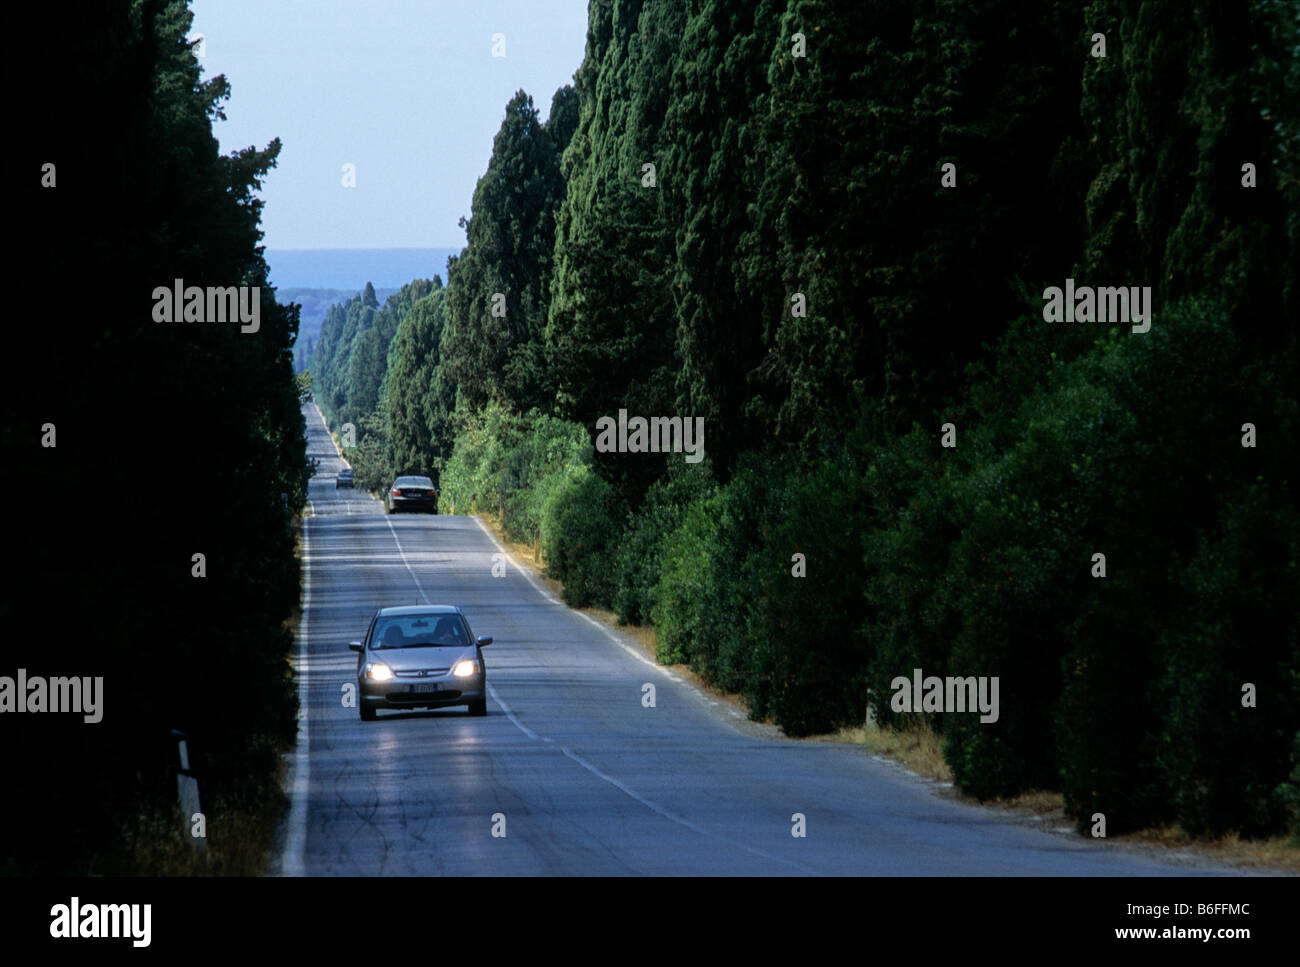 Cypress avenue between San Guido and Bolgheri near Castagneto Carducci, Livorno province, Tuscany, Italy, Europe - Stock Image